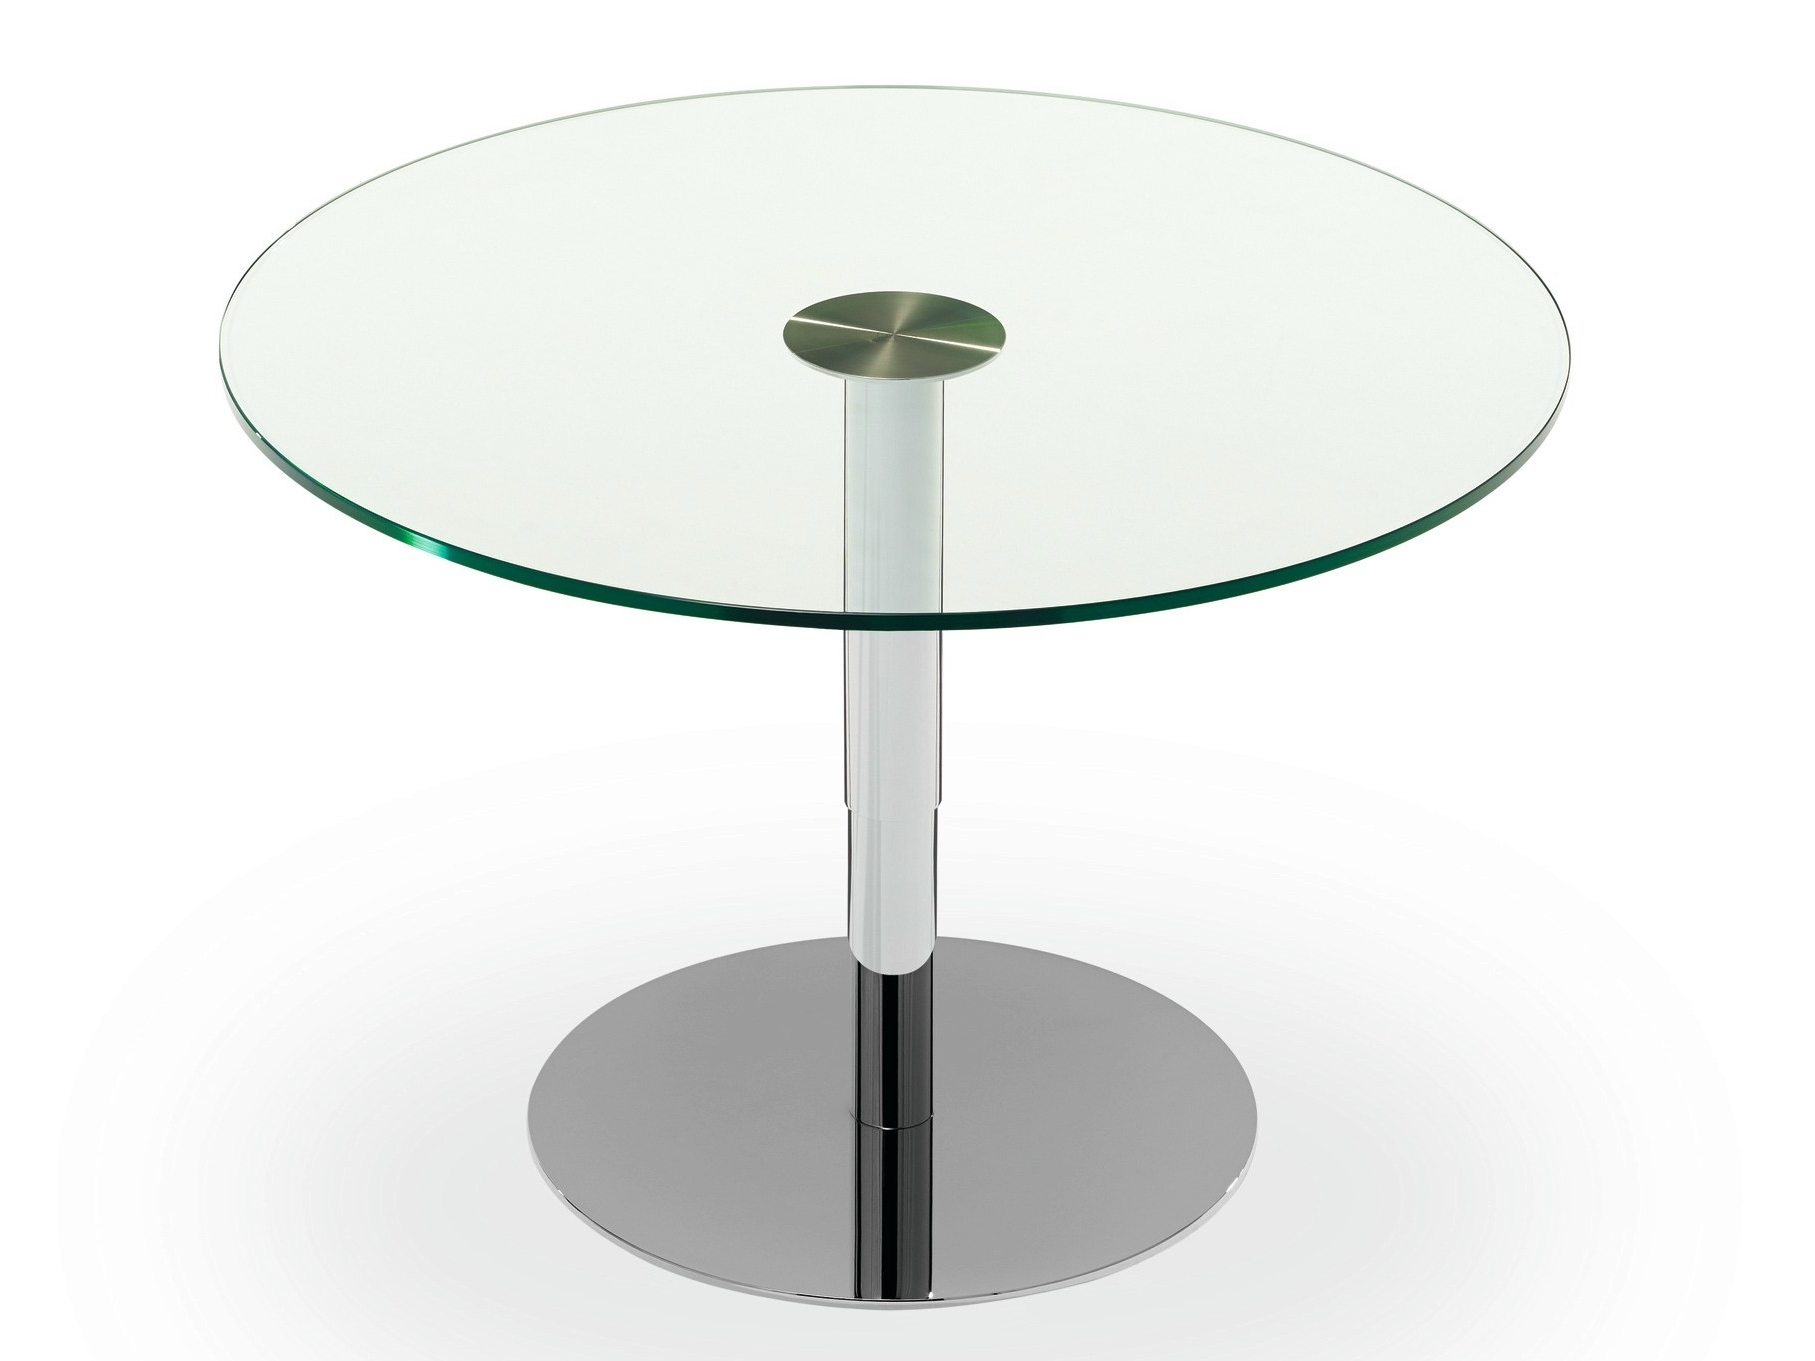 Ikea Round Glass Top Dining Tables Inside Preferred Ikea Round Glass Table Top – Glass Decorating Ideas (View 10 of 25)